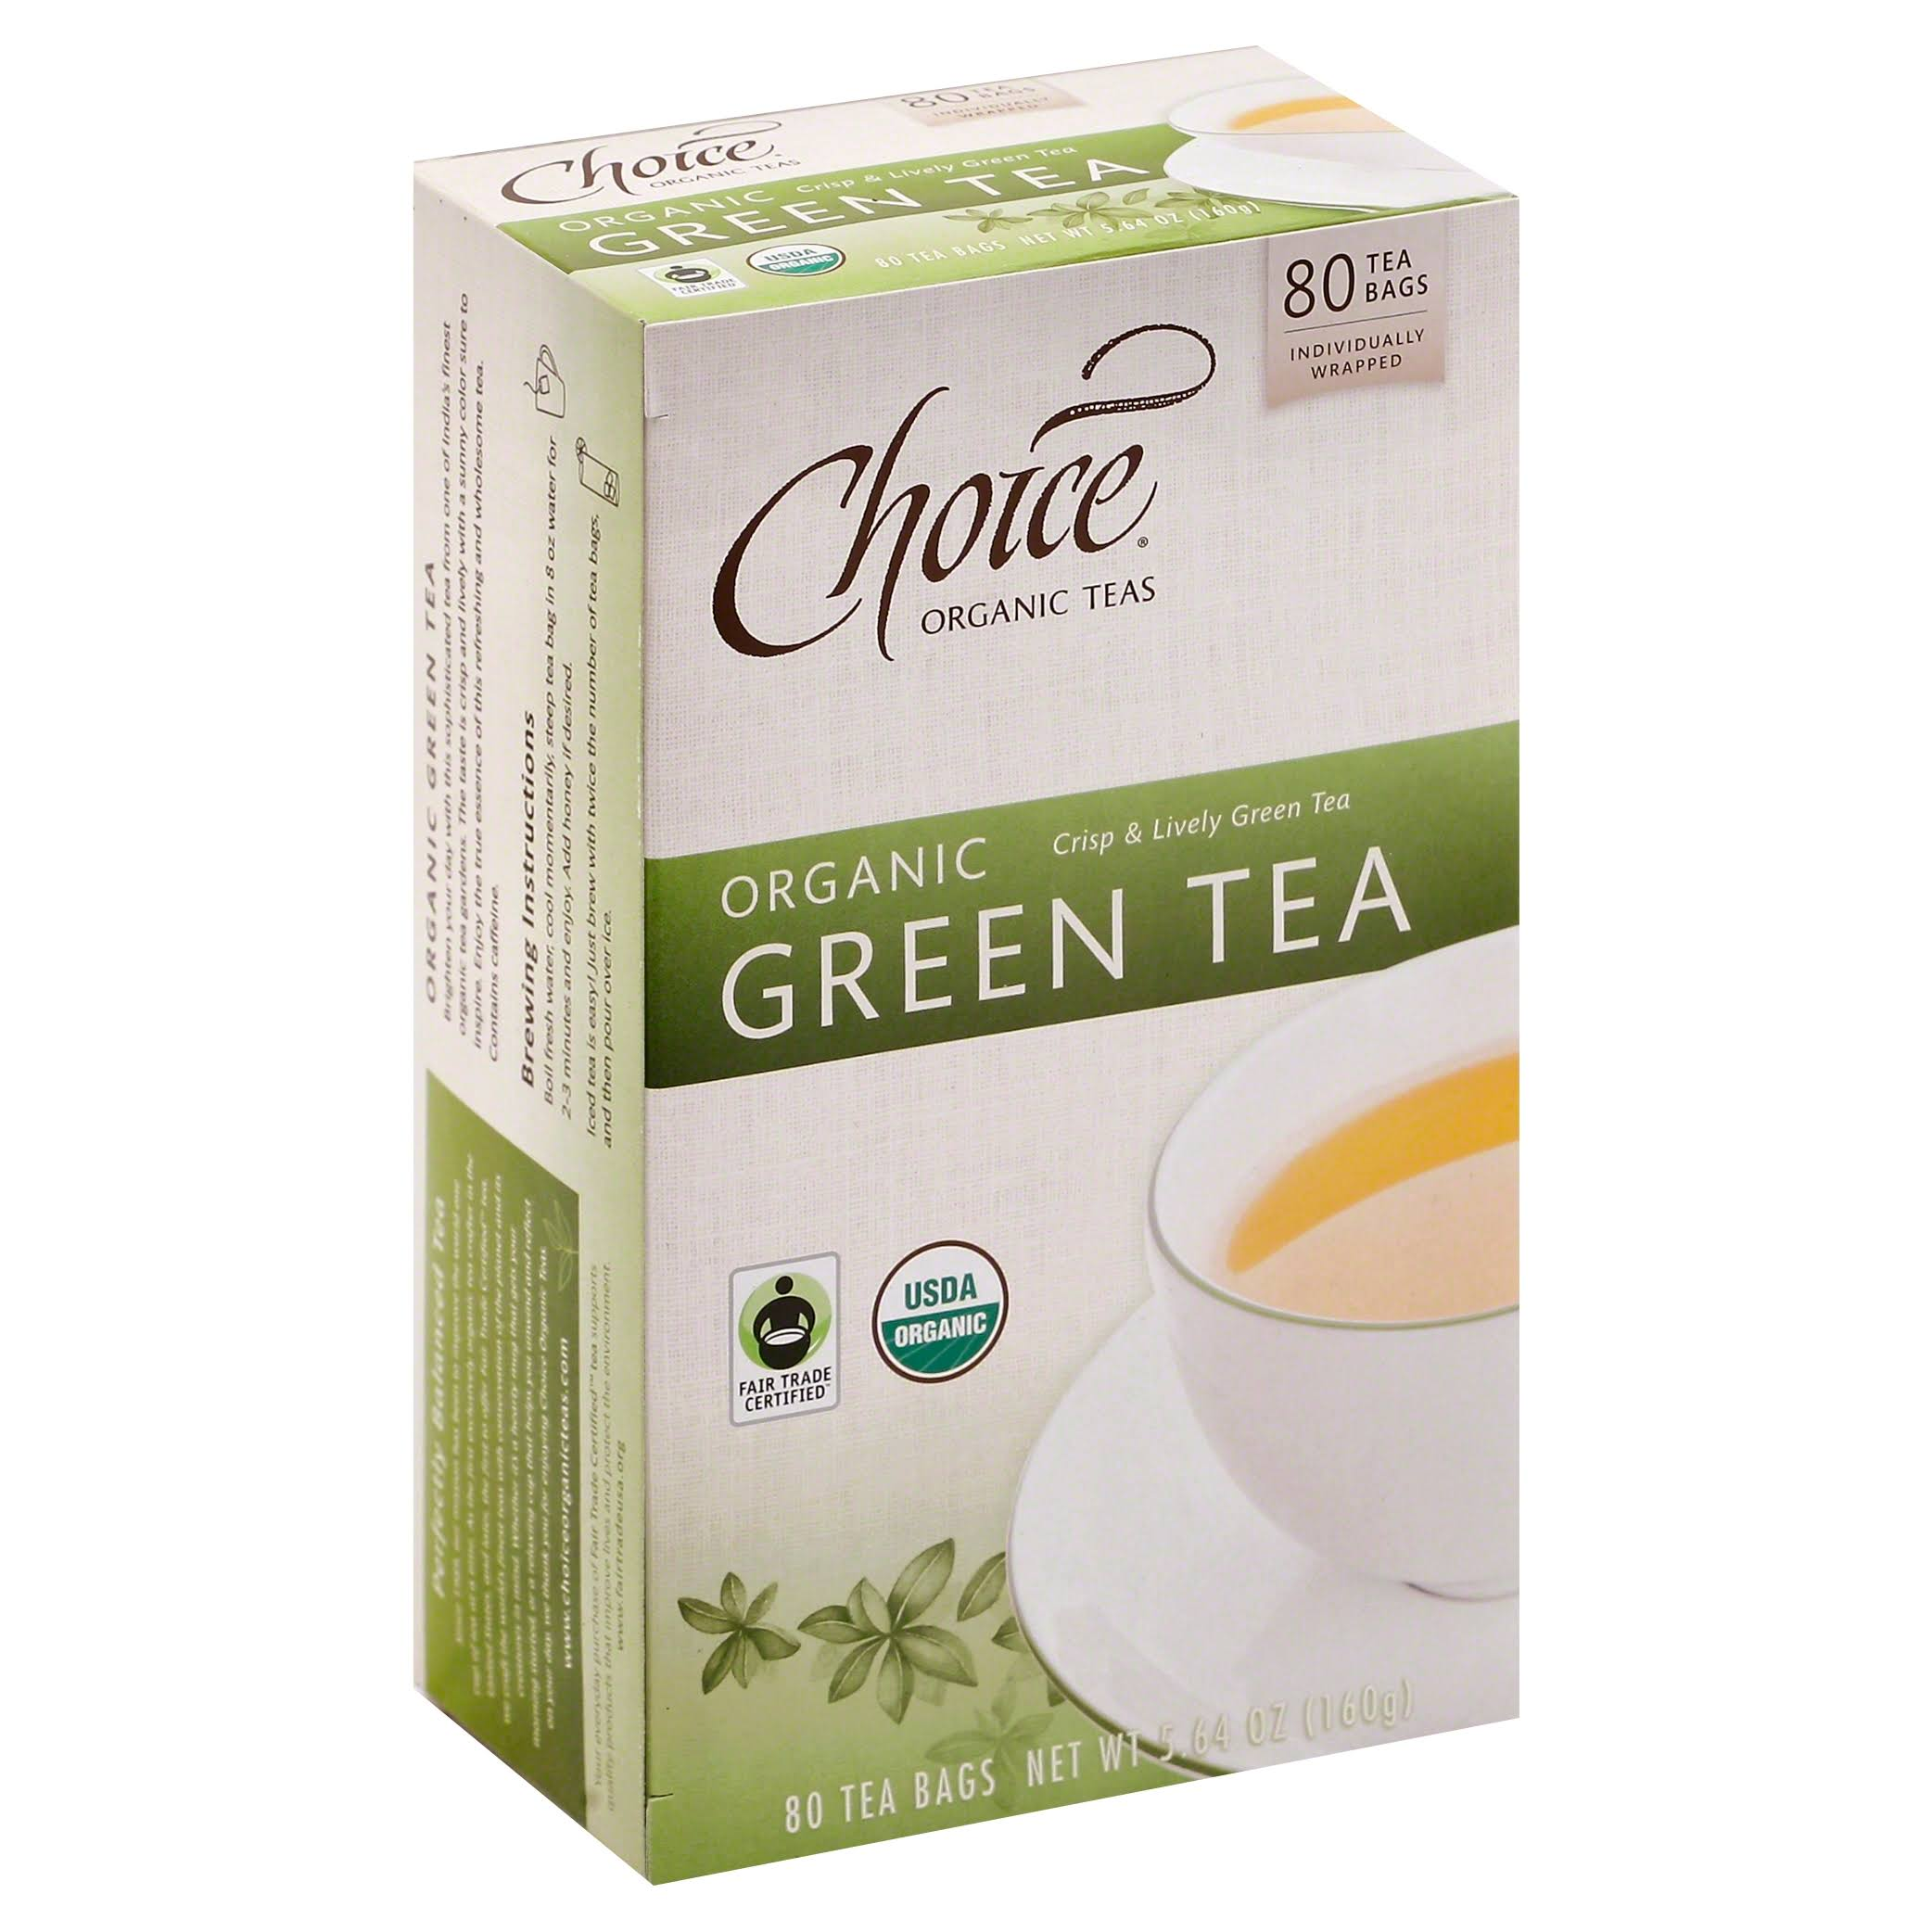 Choice Organic Teas Green Tea, Organic, Tea Bags - 80 bags, 5.64 oz